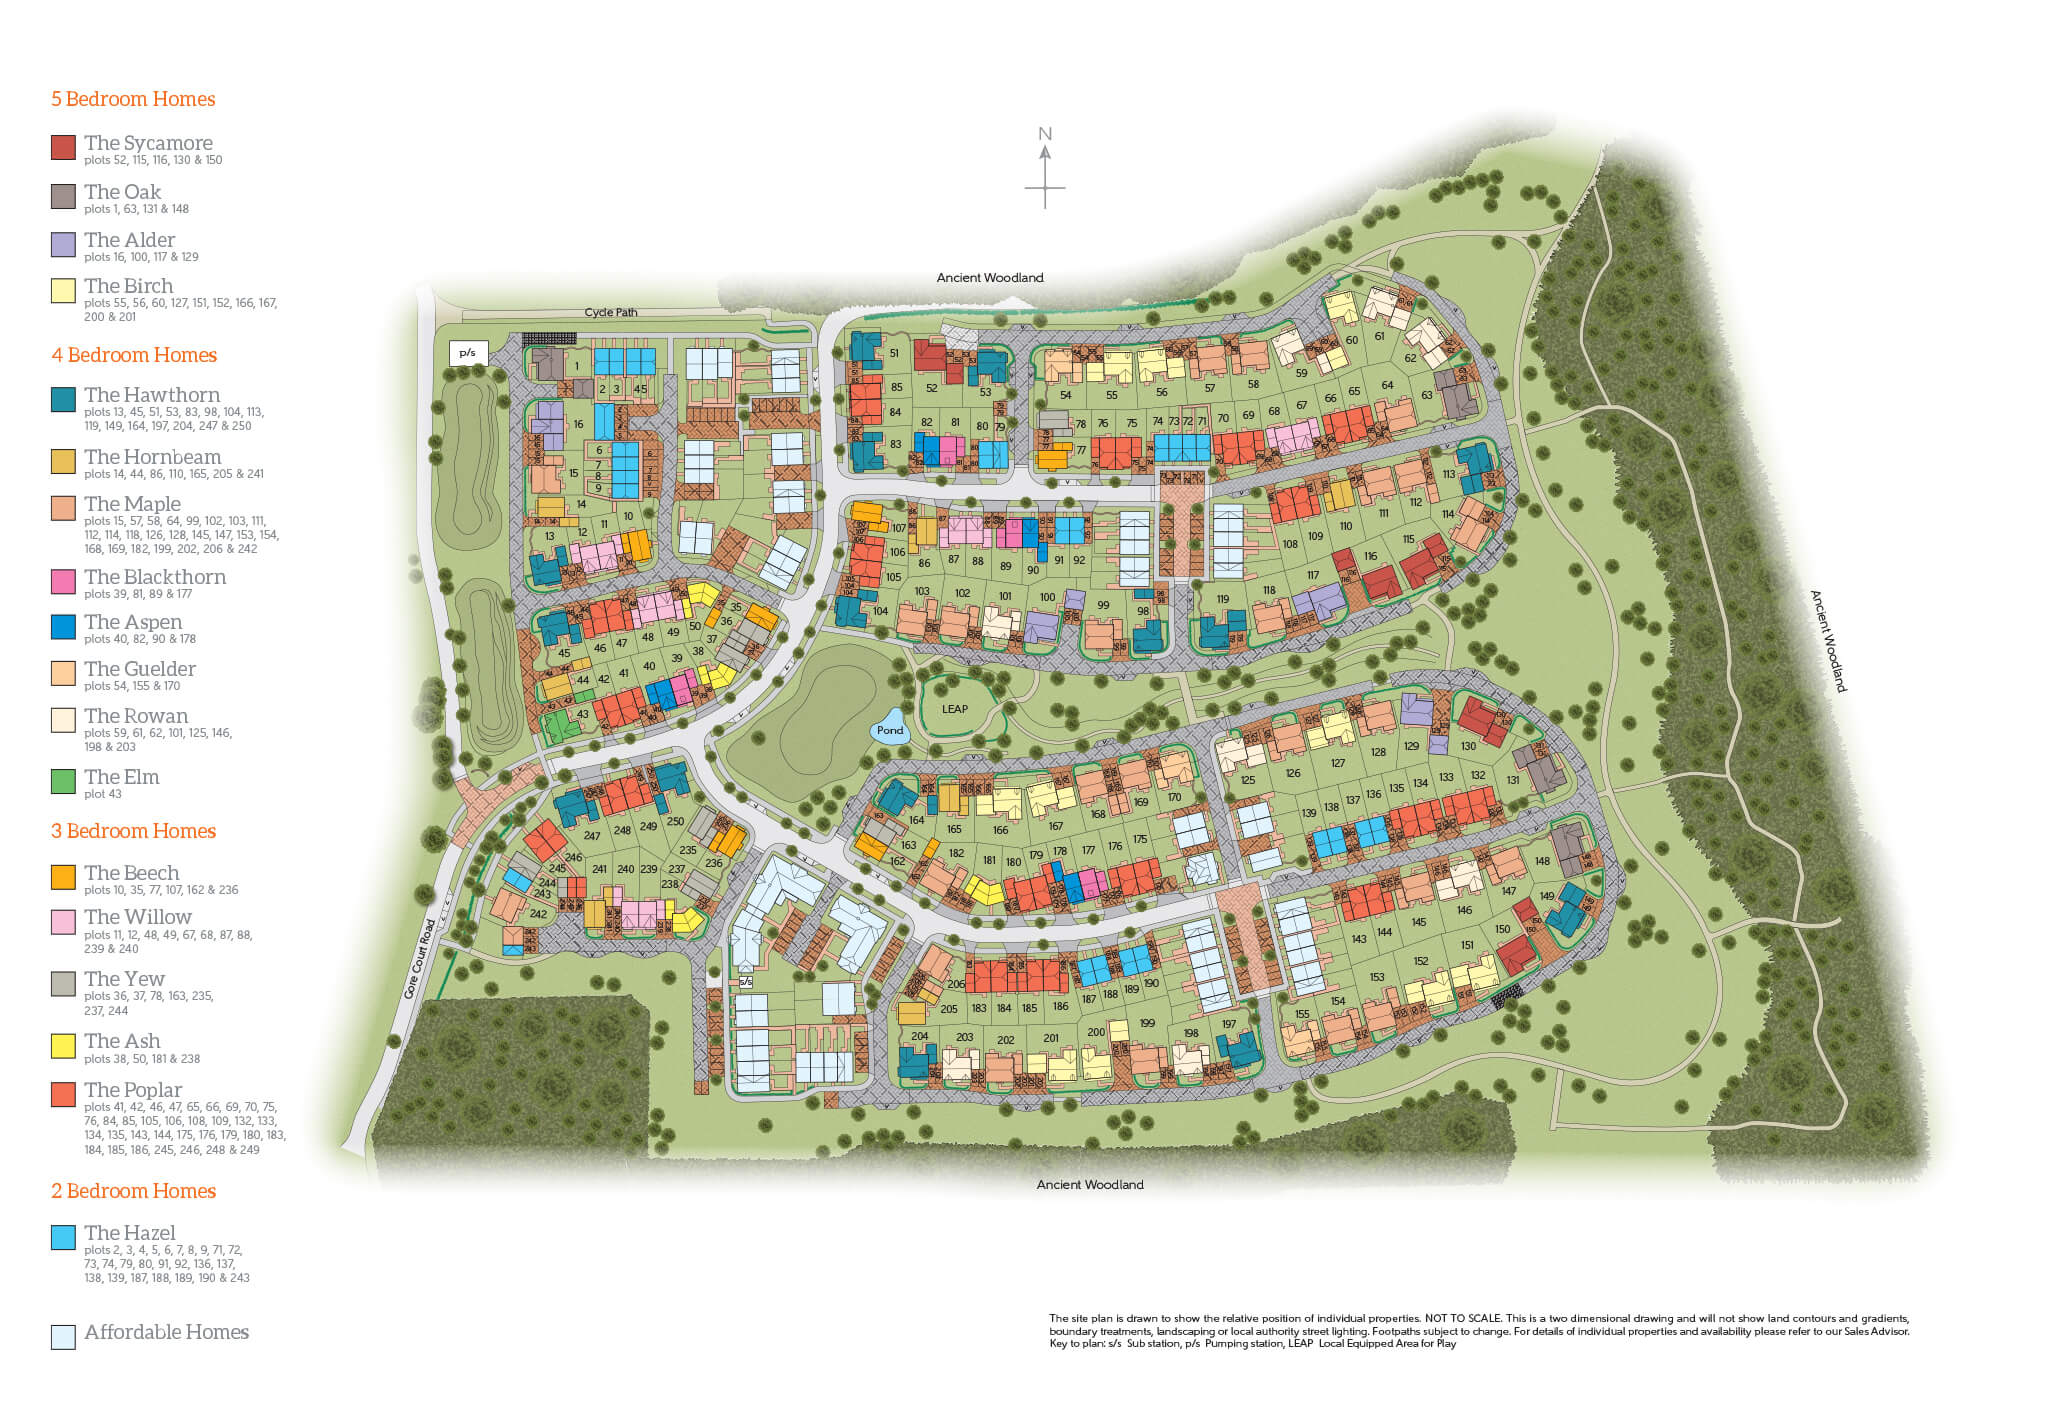 New homes for sale in Otham, Kent from Bellway Homes